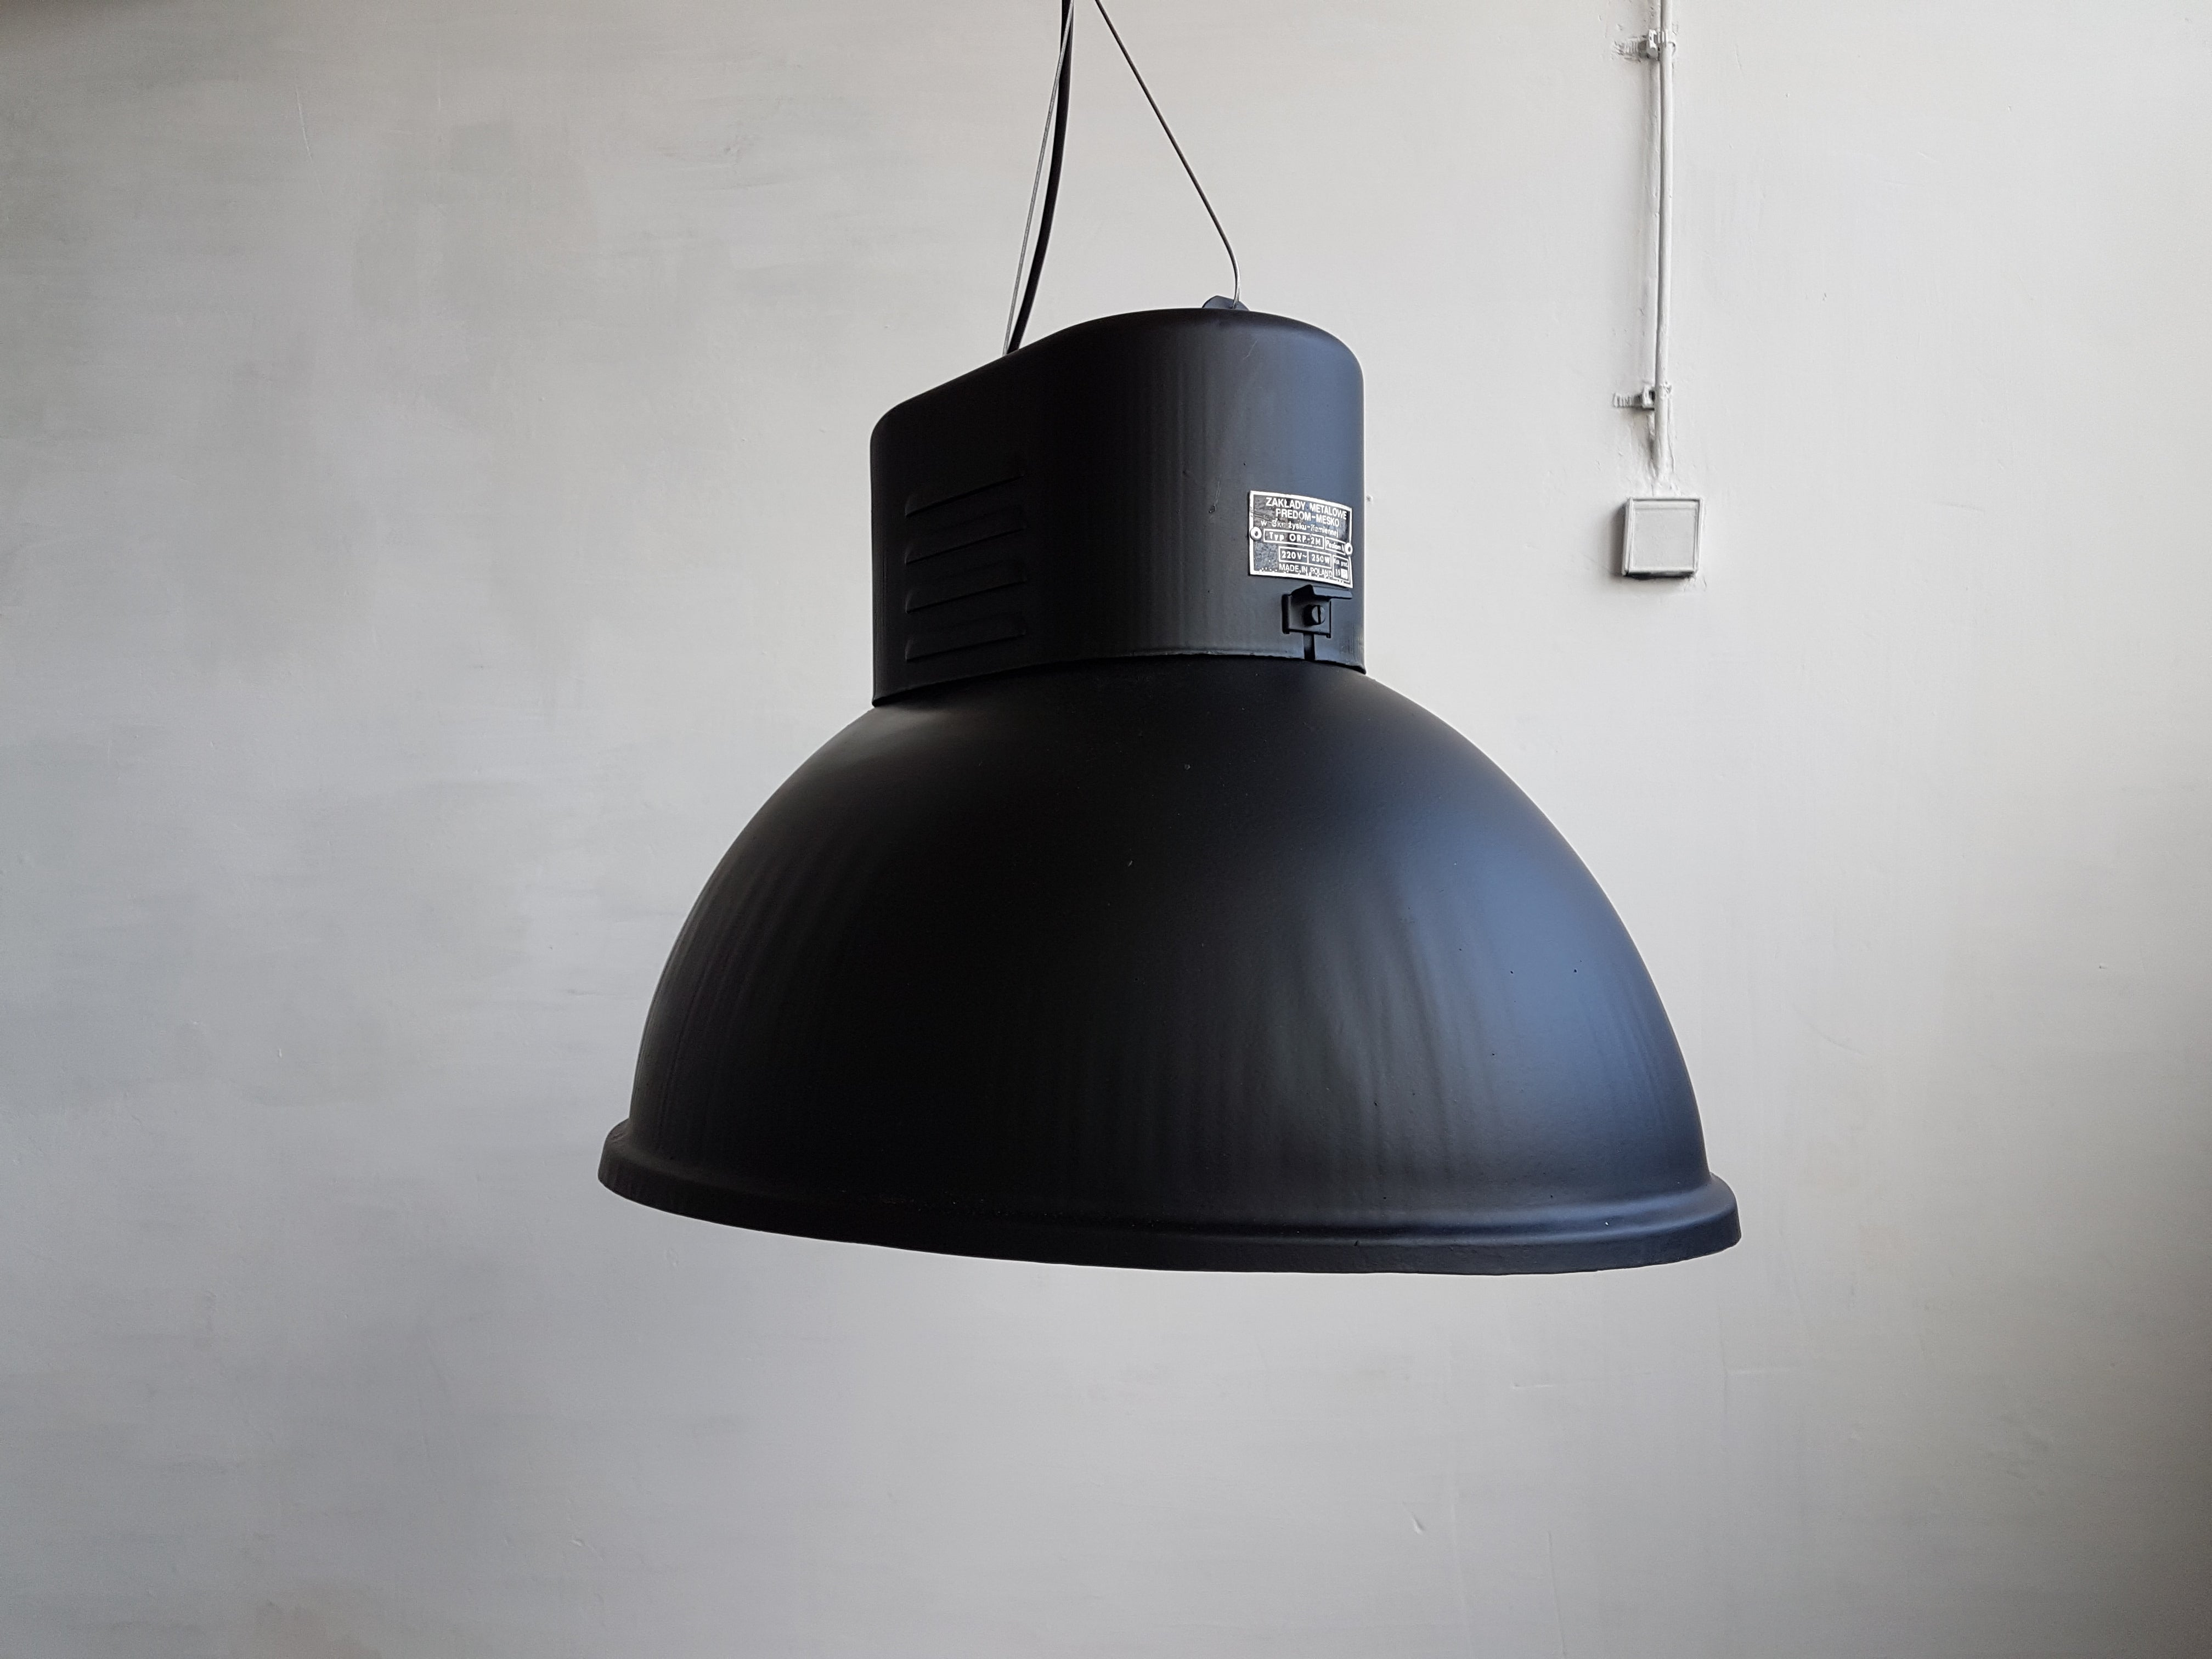 Vintage industrial factory lamp lamps from predom mesko s for